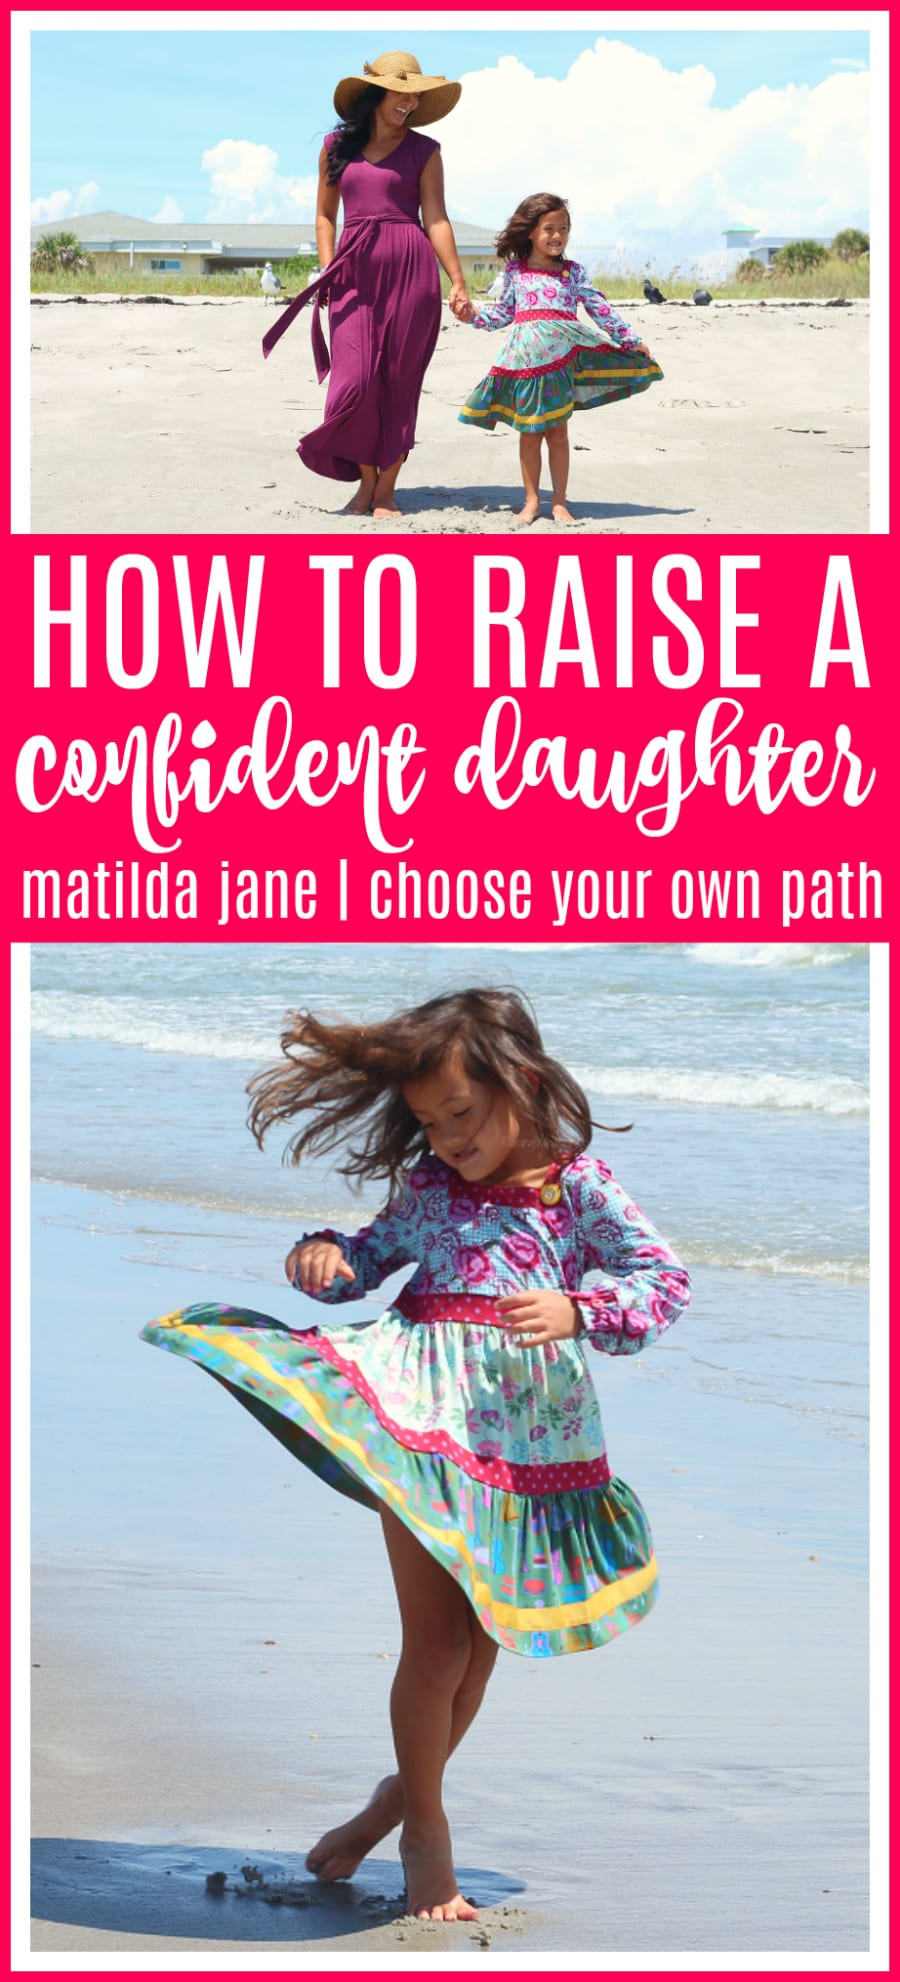 Tips to raise a confident daughter